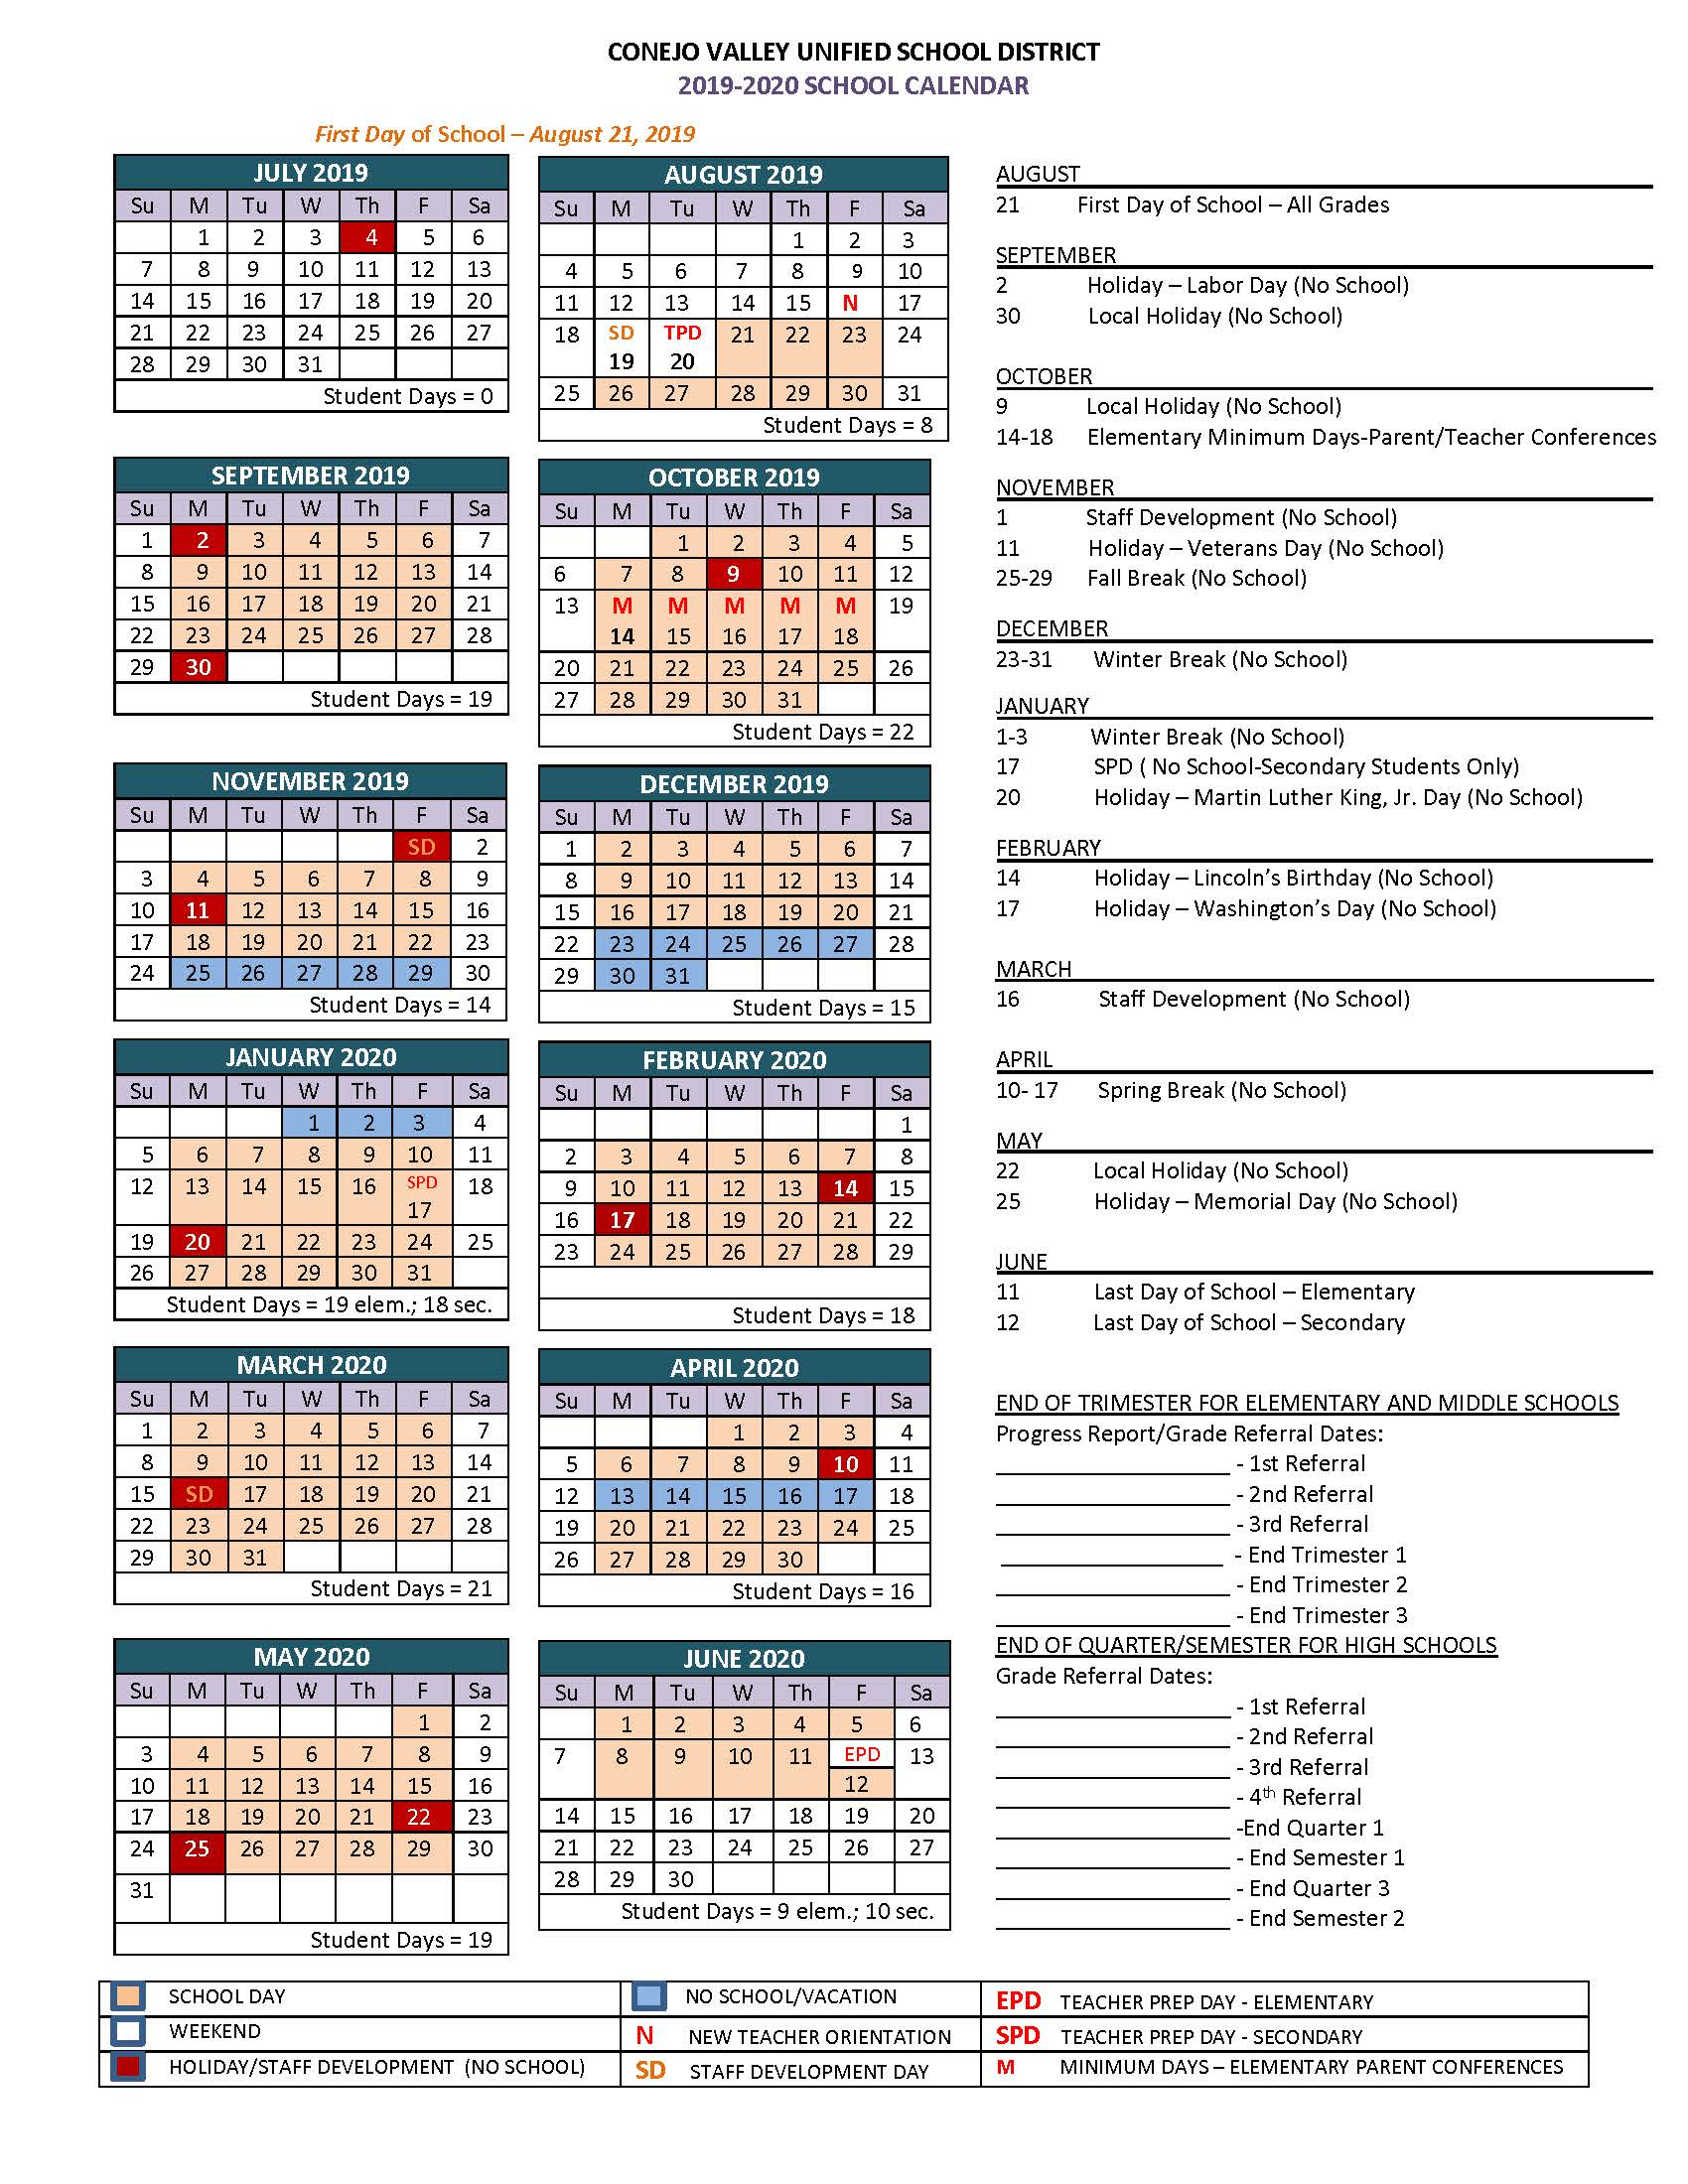 Wyoming University Calendar | Printable Calendar 2020 2021 Throughout Cobb County Superior Court Holiday 2021